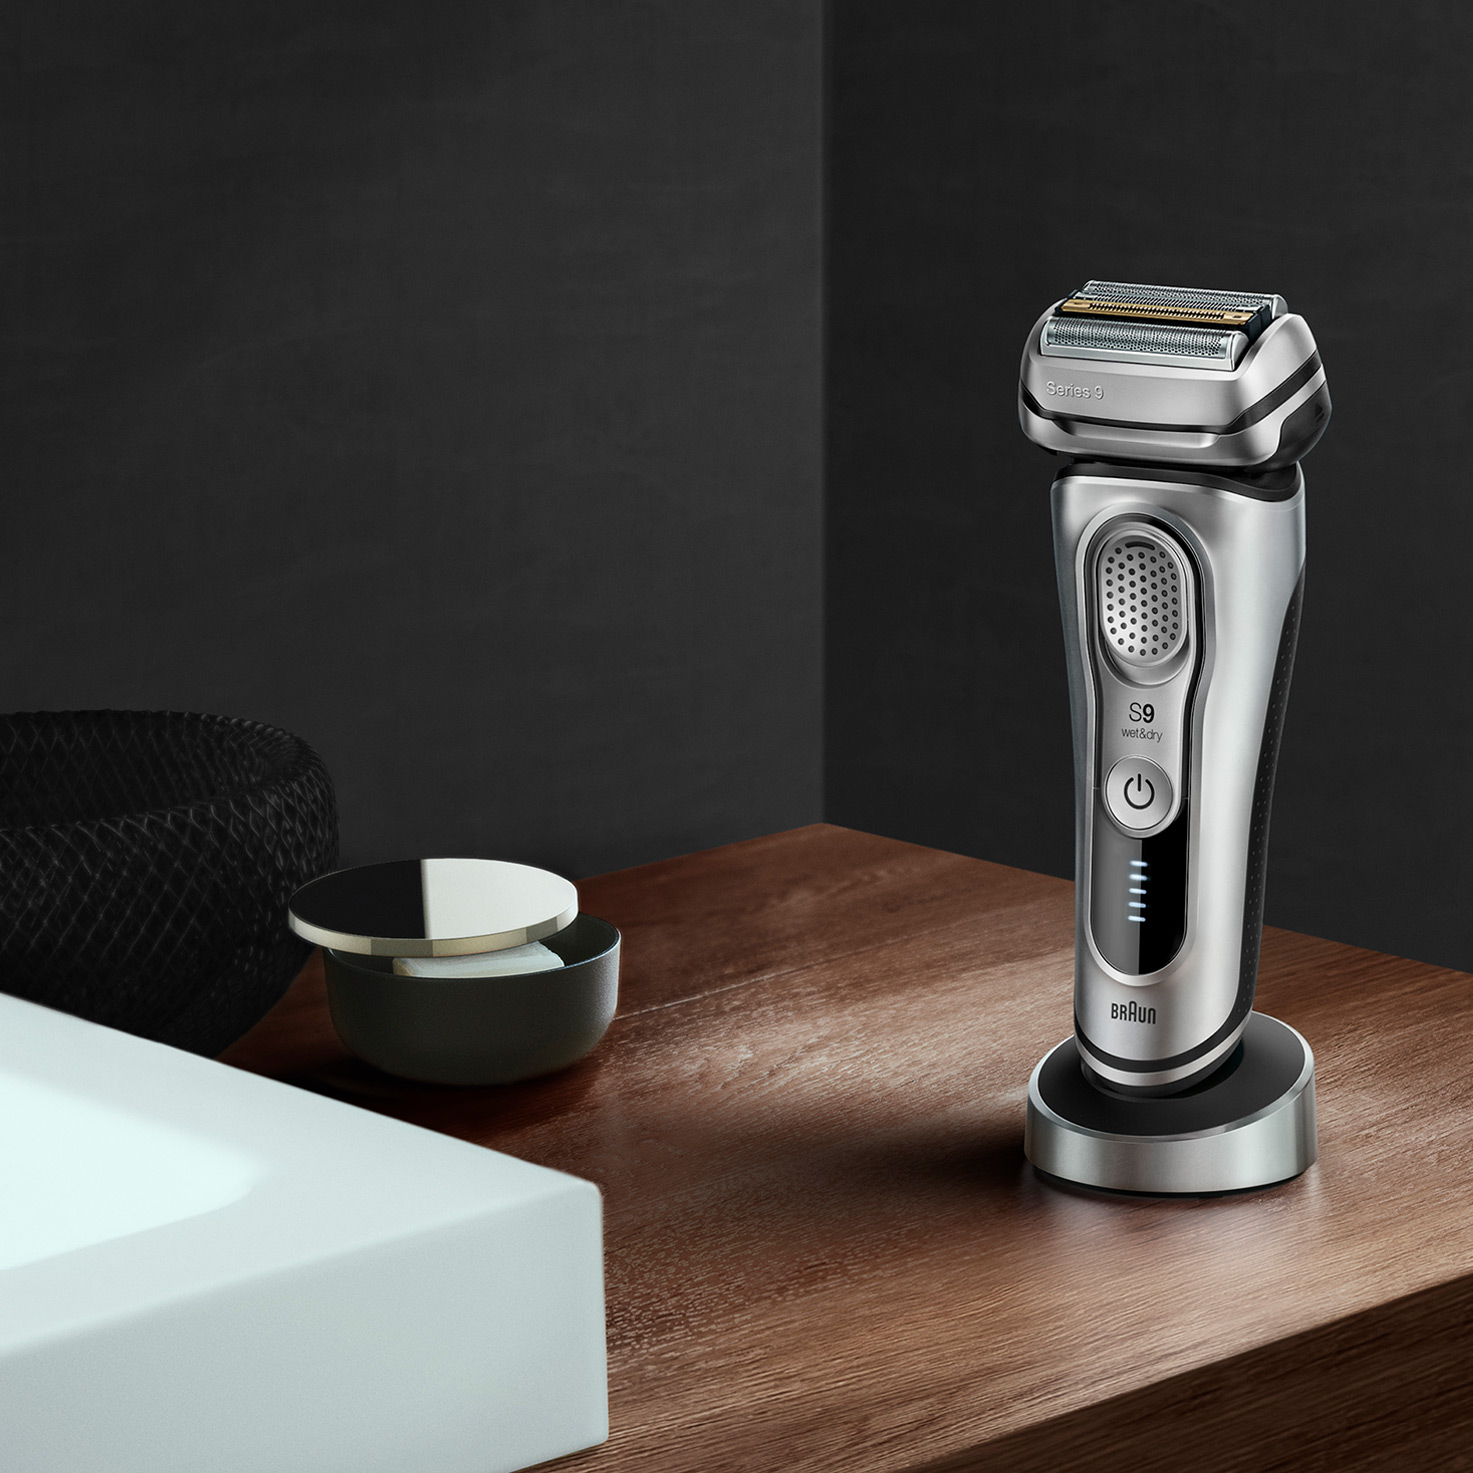 Series 9 9395cc shaver in charging stand